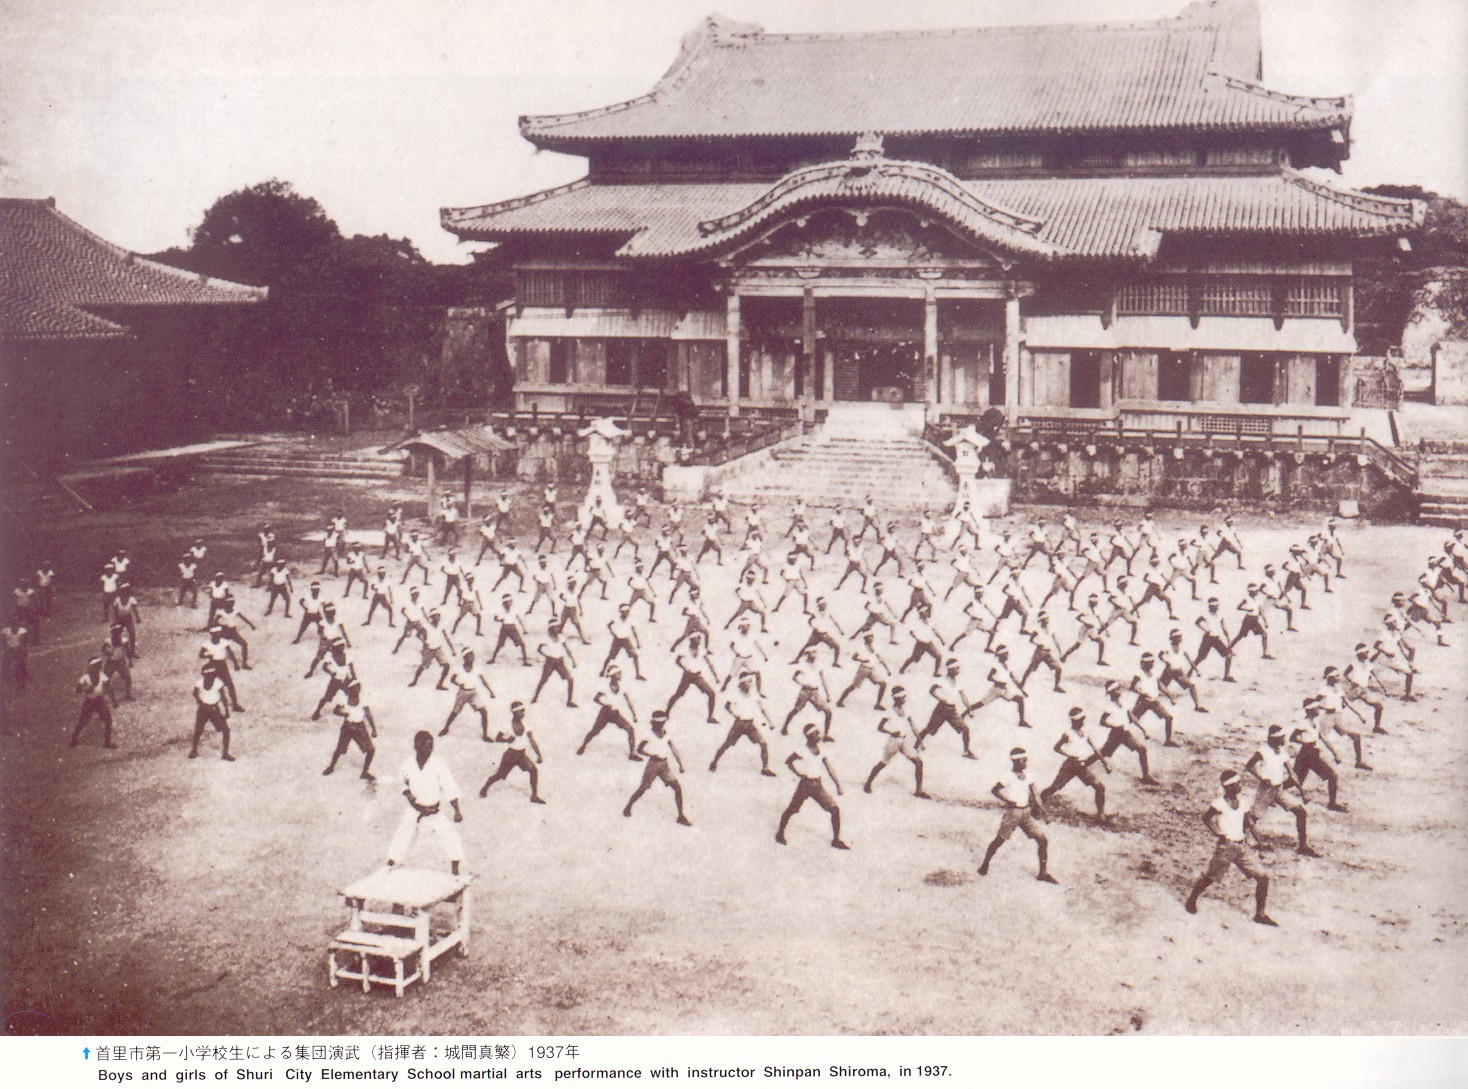 High school karate practice in Shuri in 1937